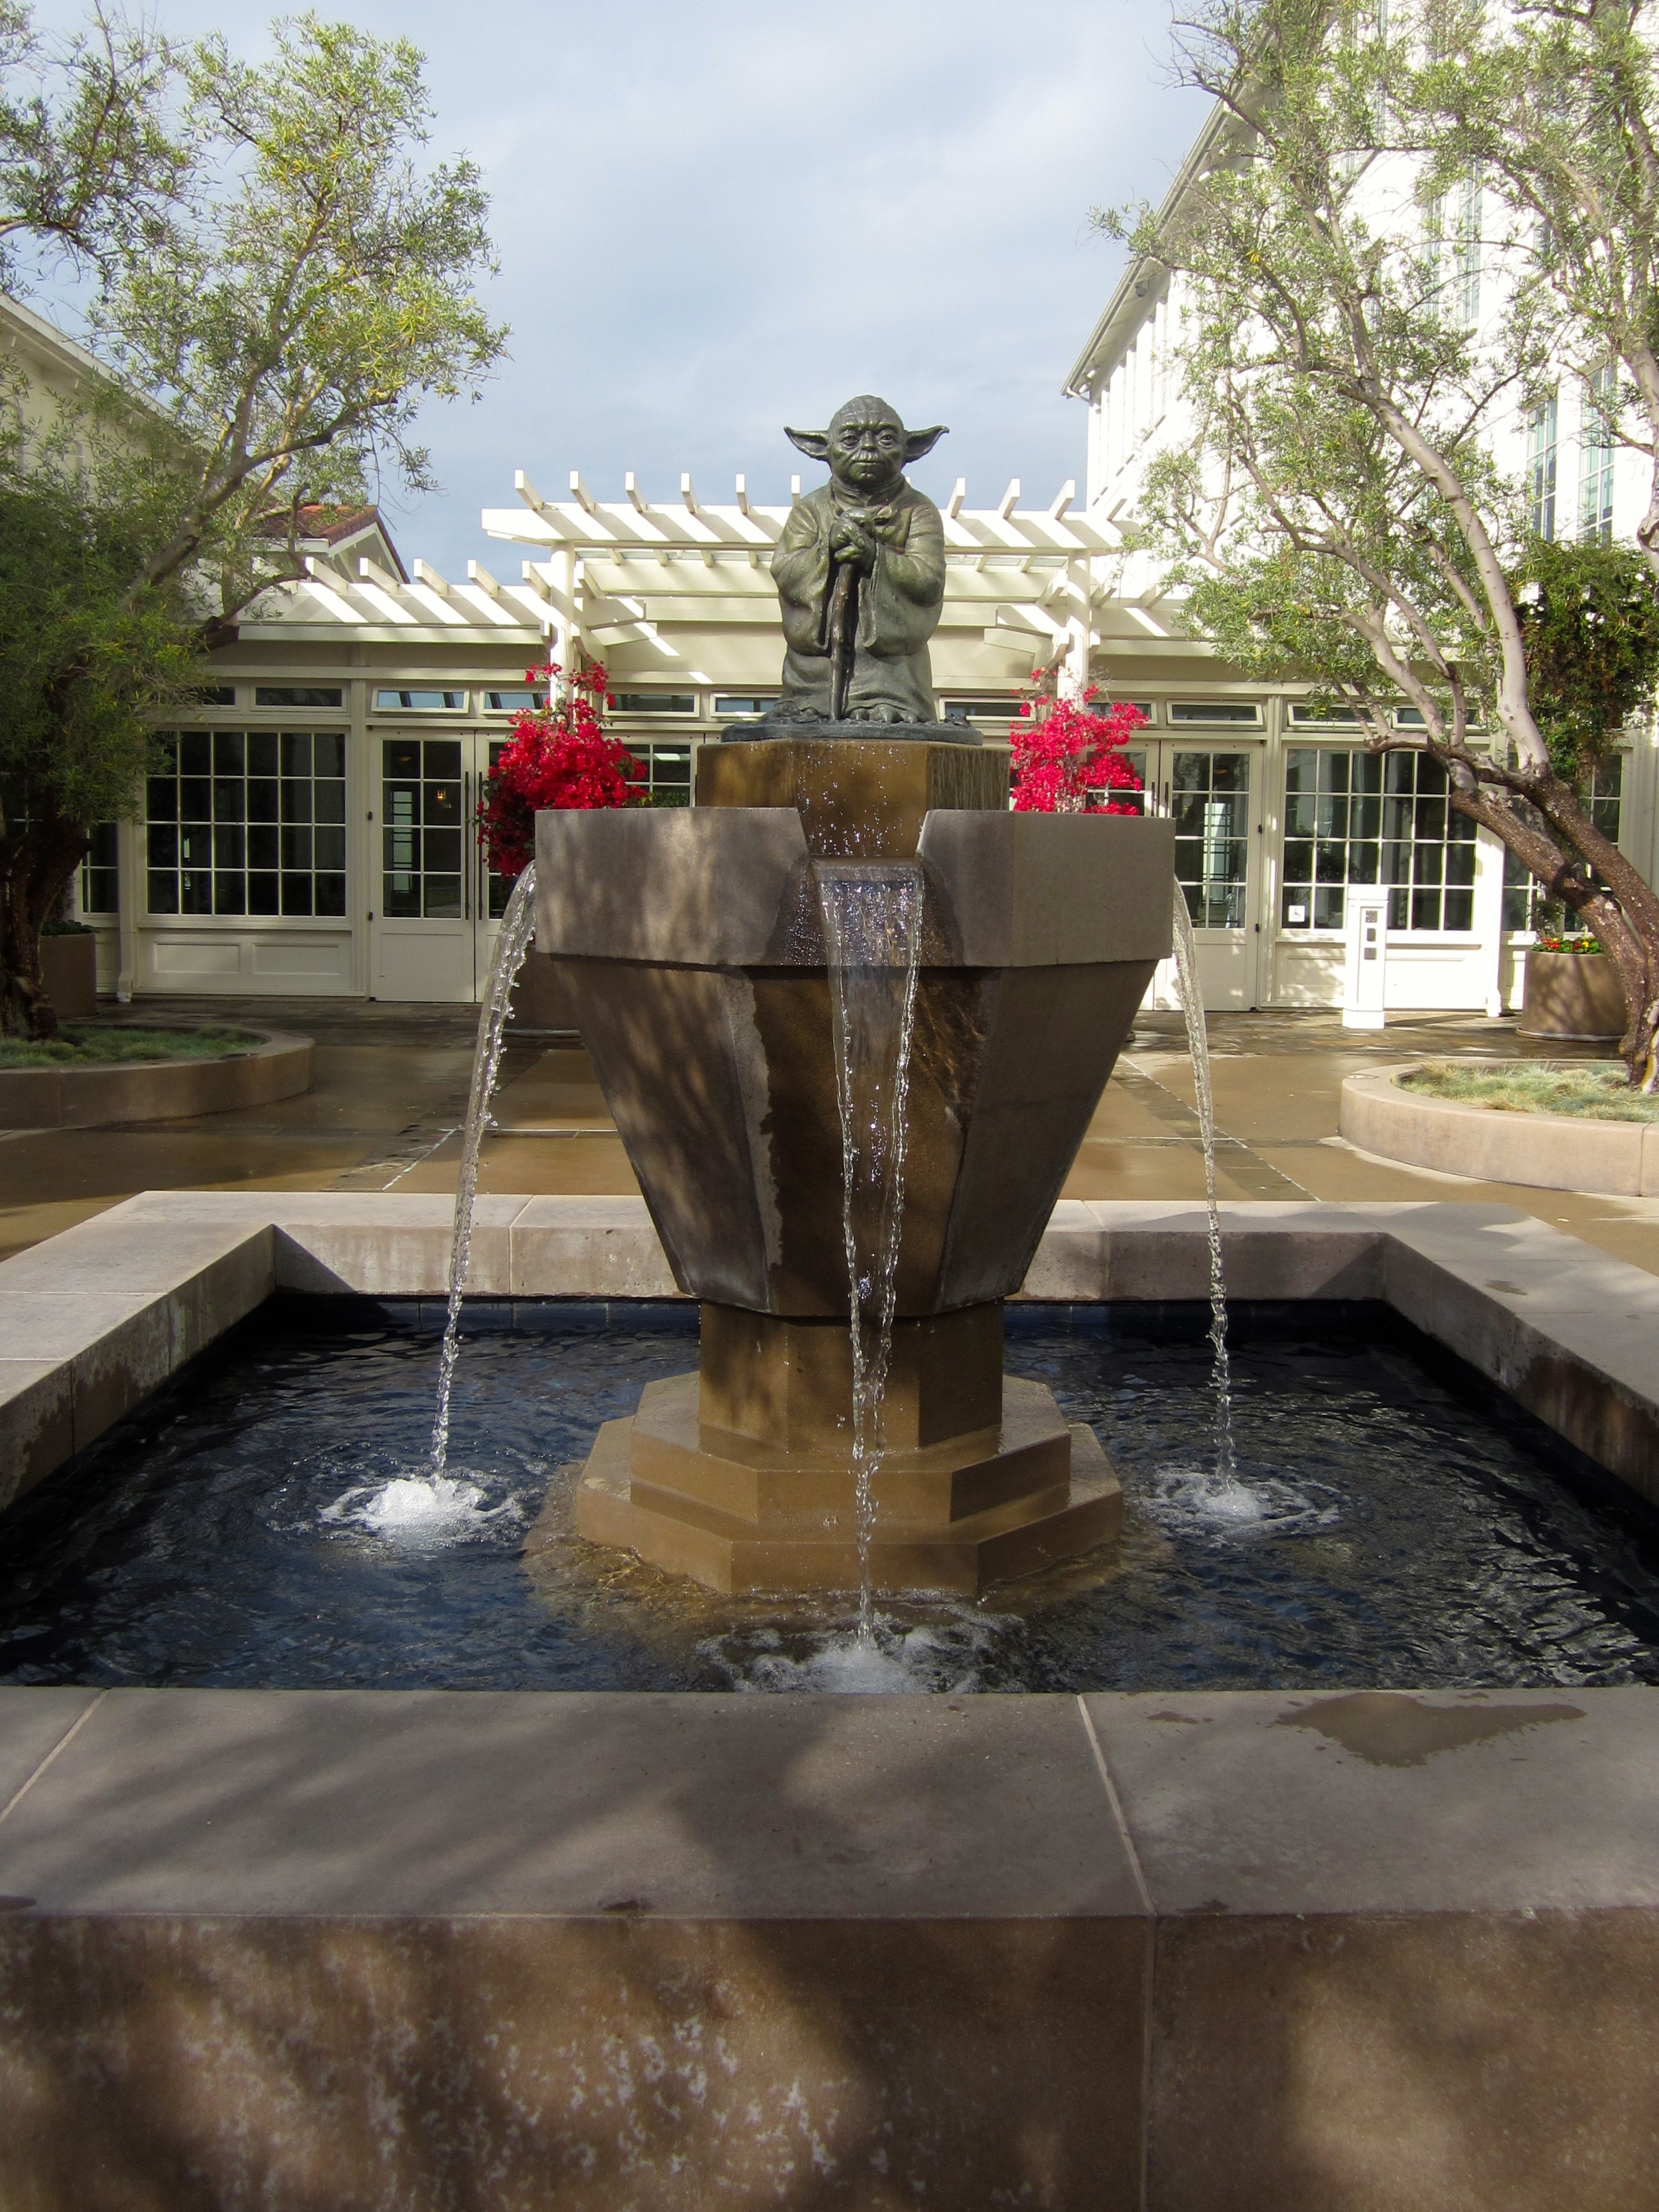 Just inside the Lombard Gate of the Presidio, the Letterman Digital Arts Center is a serene 23-acre campus that serves as the headquarters of Lucasfilm. The property includes a public park and an iconic Yoda fountain at the main entrance to the four-building complex.